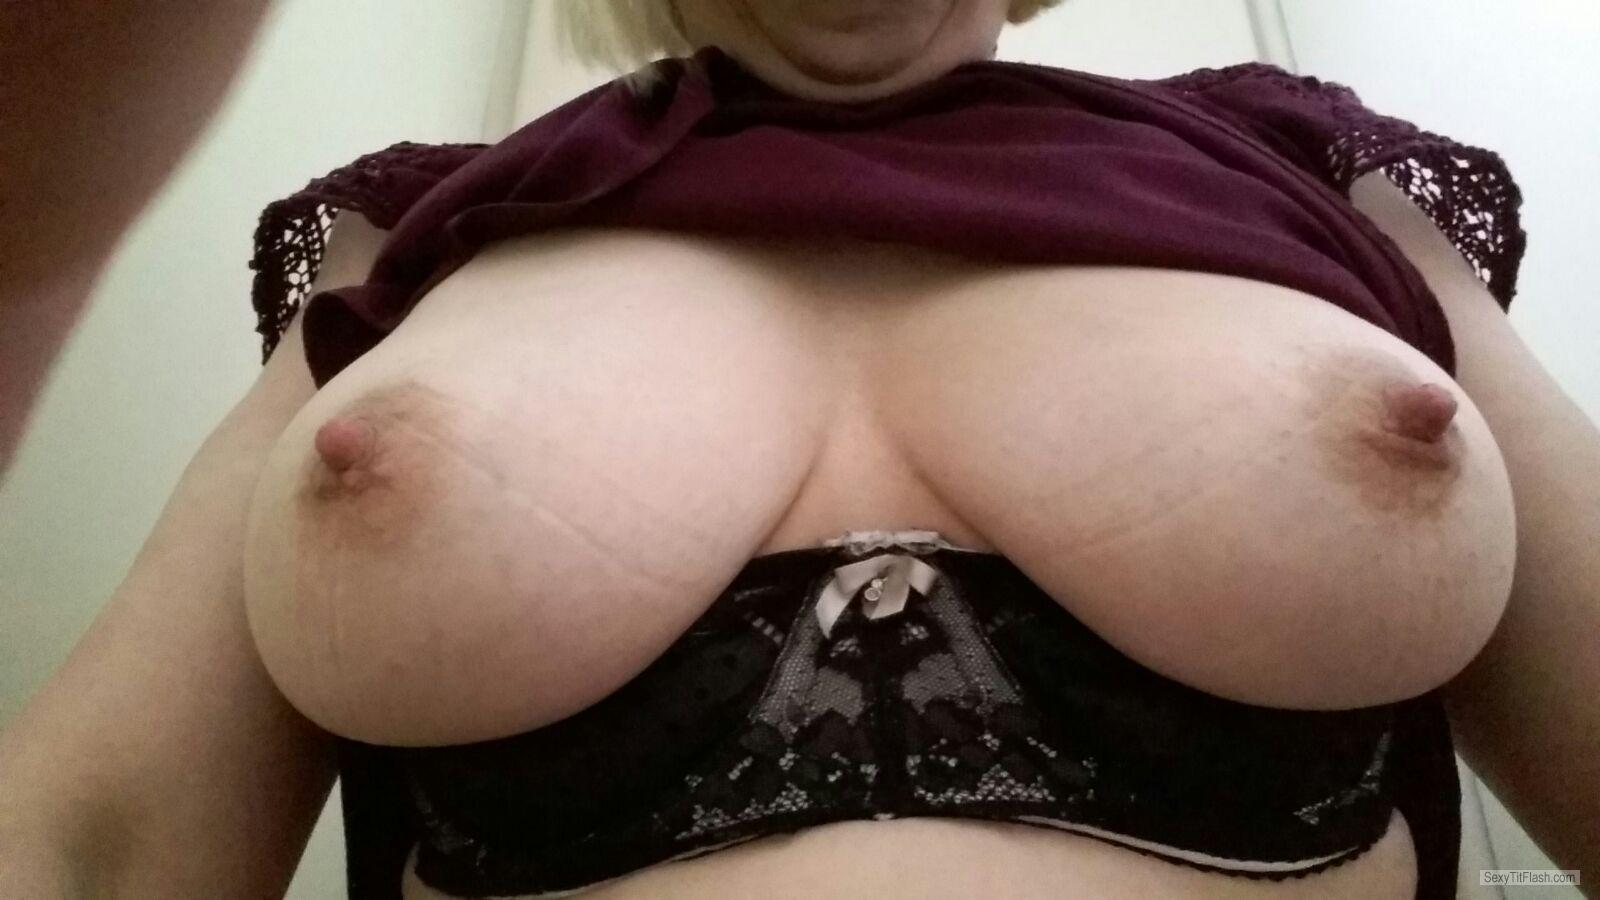 Tit Flash: Wife's Medium Tits (Selfie) - Ellens Boobs, Late Forties from United Kingdom